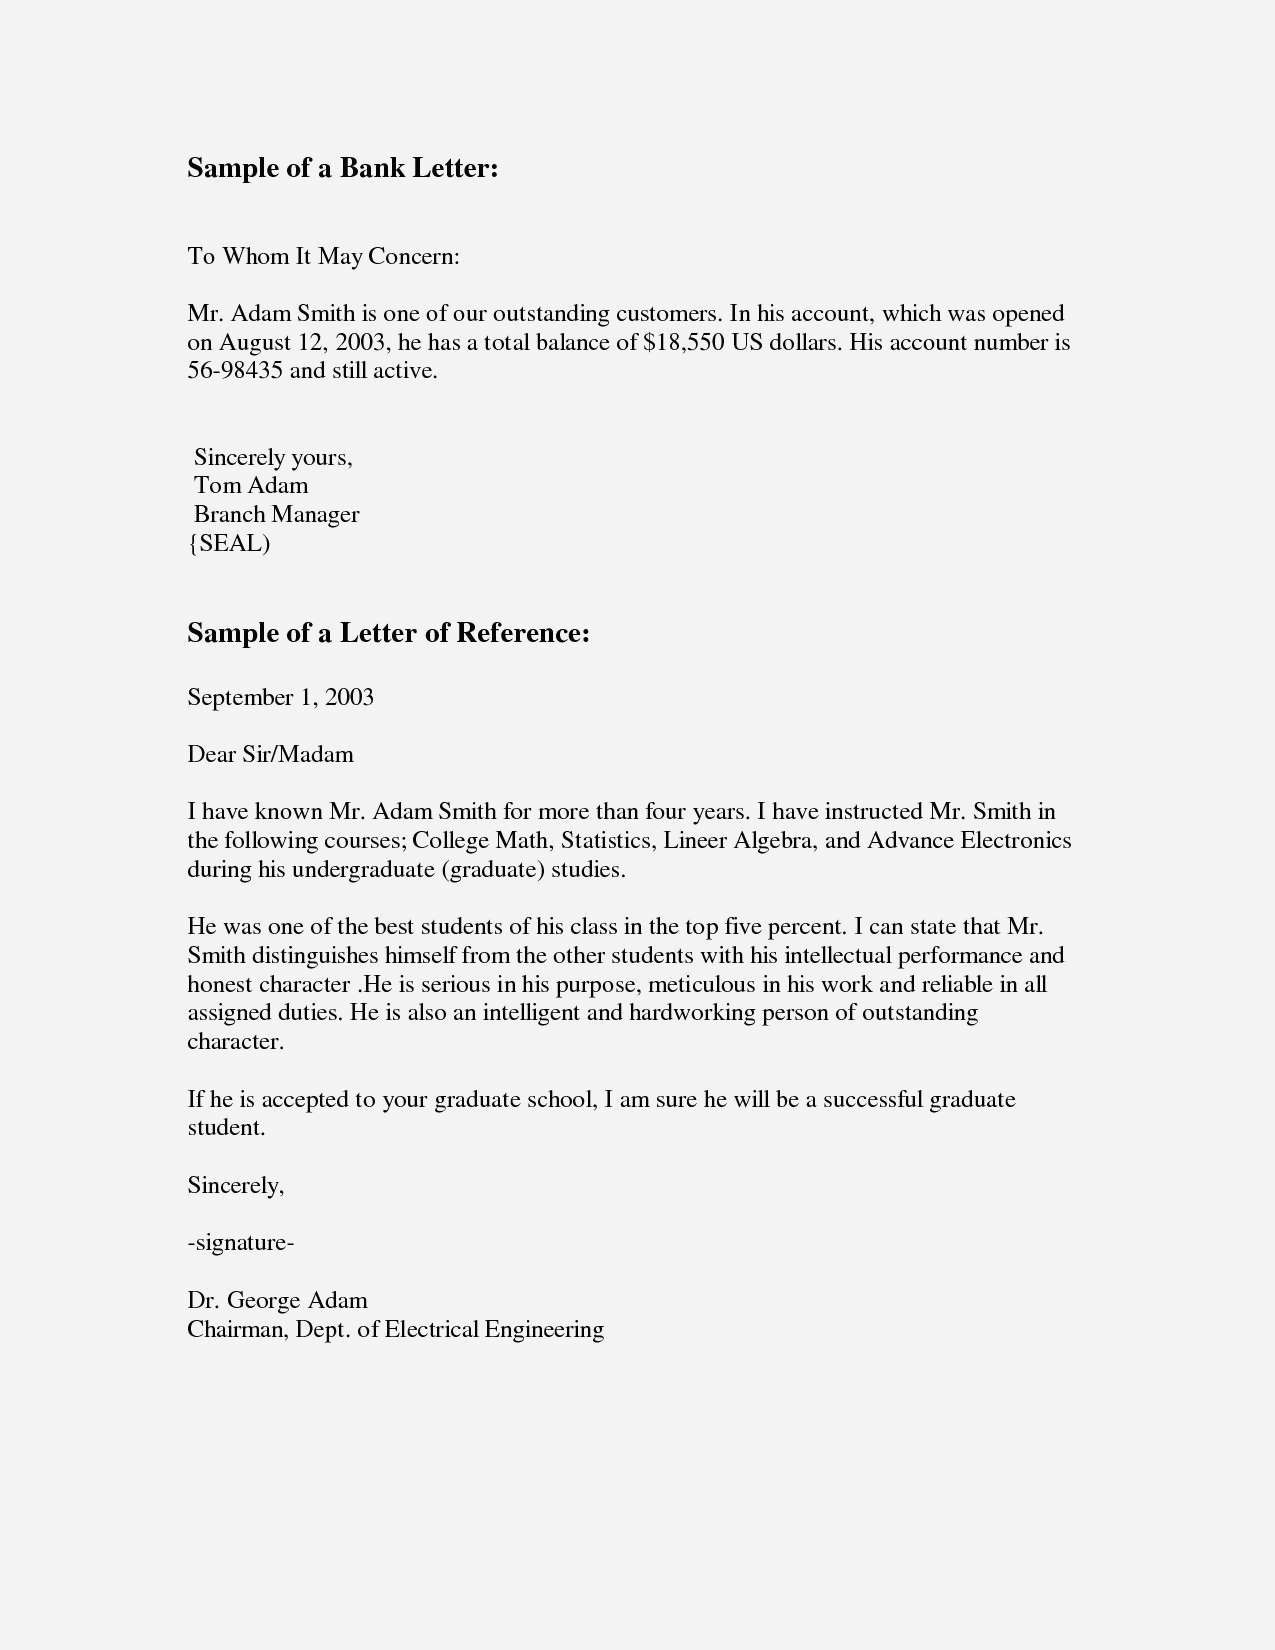 letter of recomendation template example-Formal Letter Template Unique bylaws Template 0d Wallpapers 50 ficial Letter Template 10-p